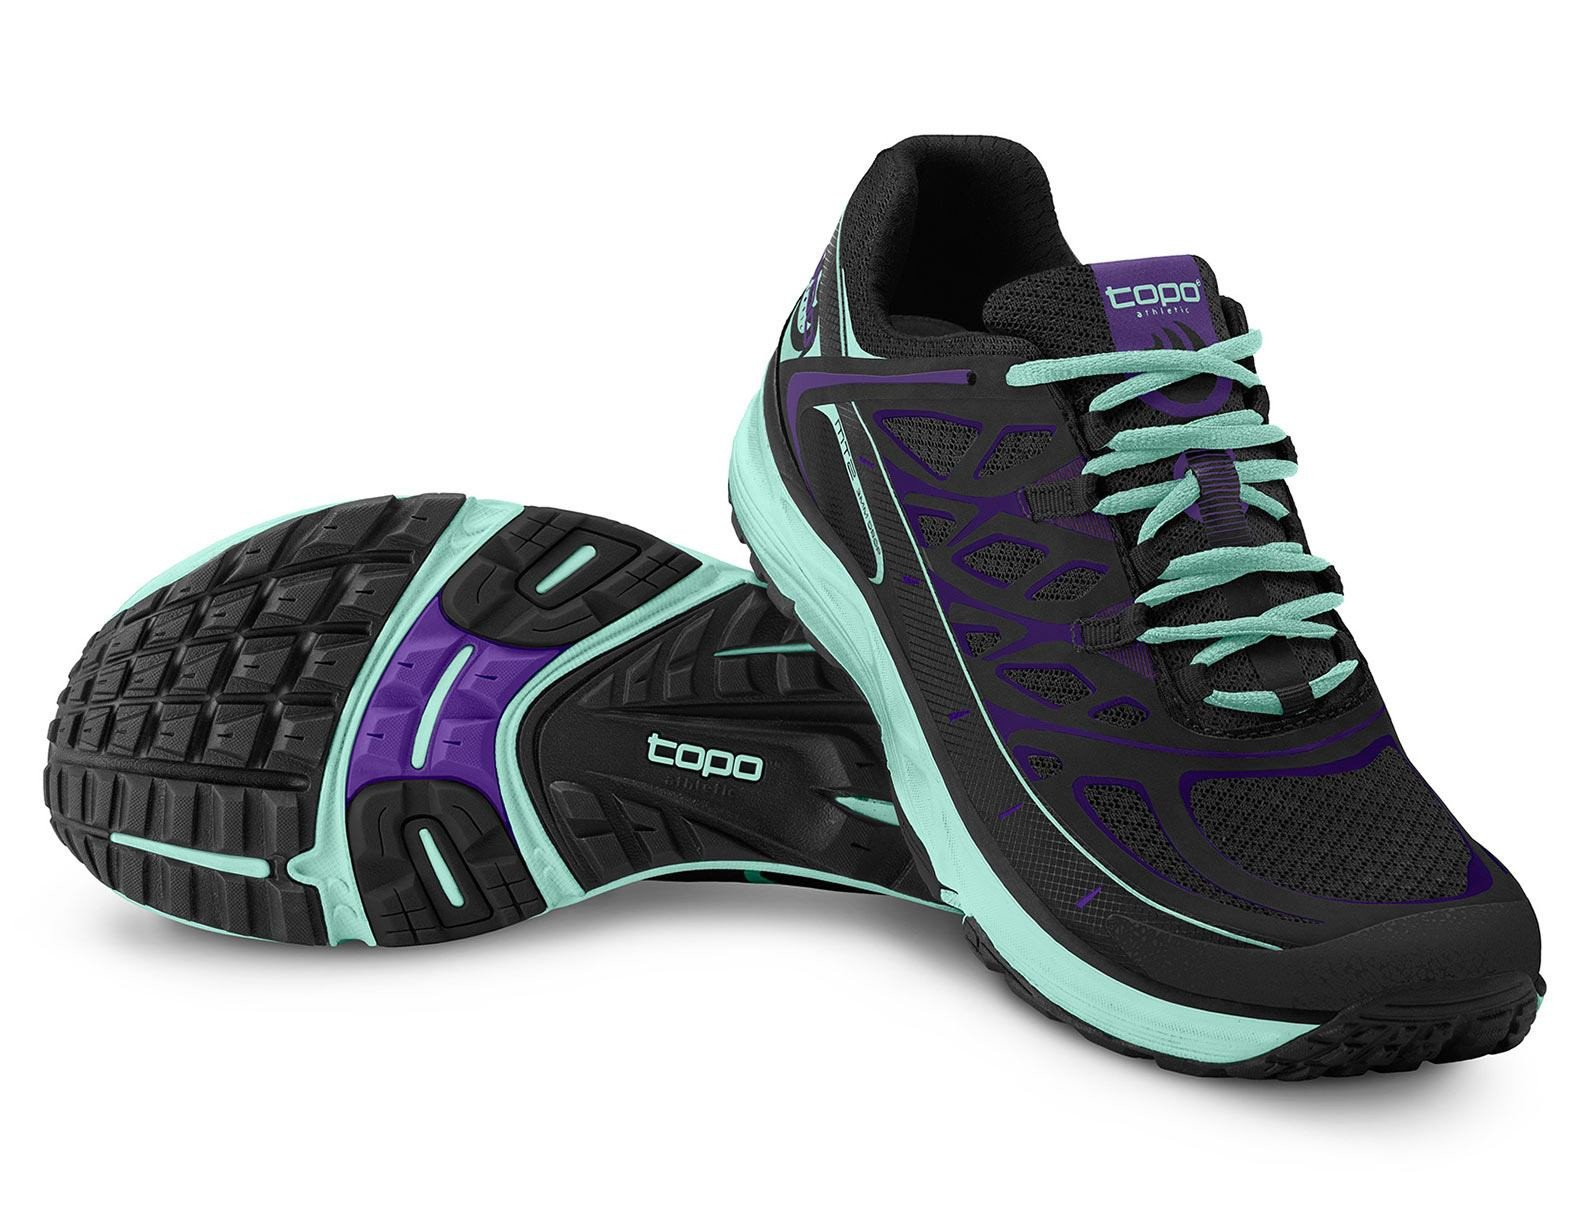 Topo Athletic MT2 Trail Running Shoe - Women's Black/Ice 8.5